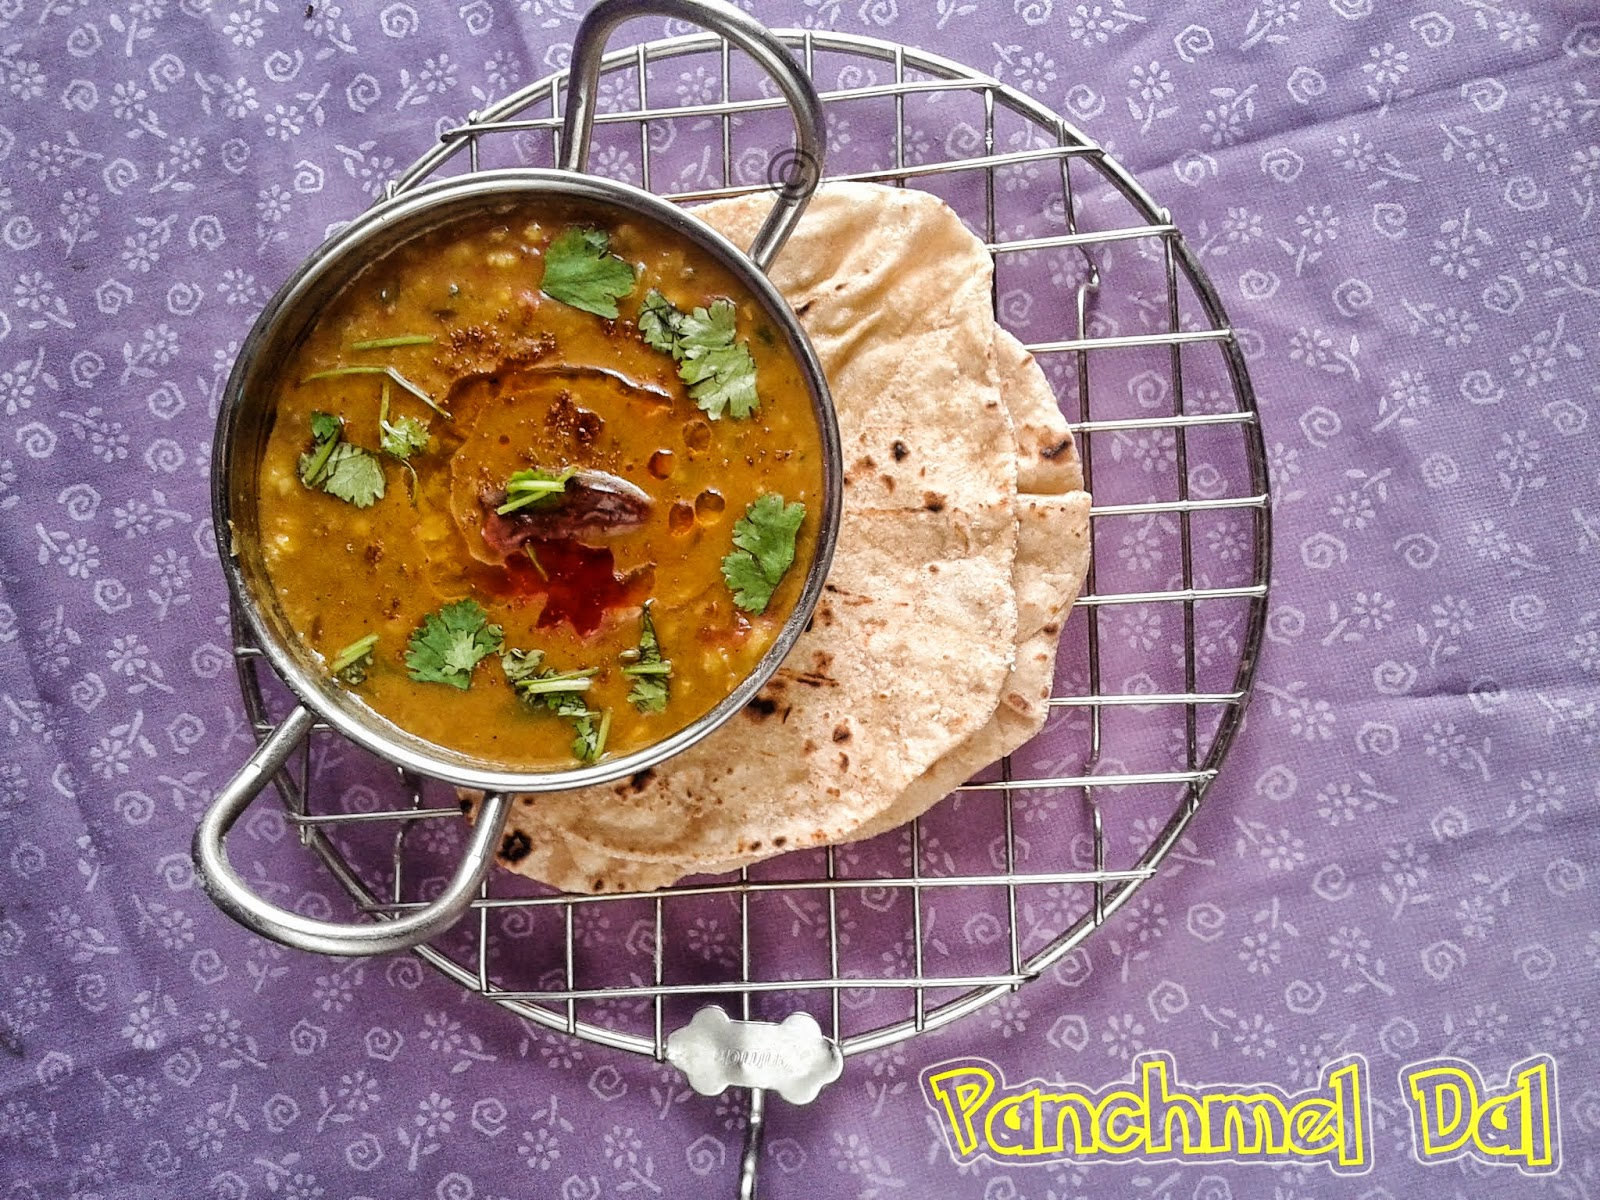 Panchmel-dal-recipe